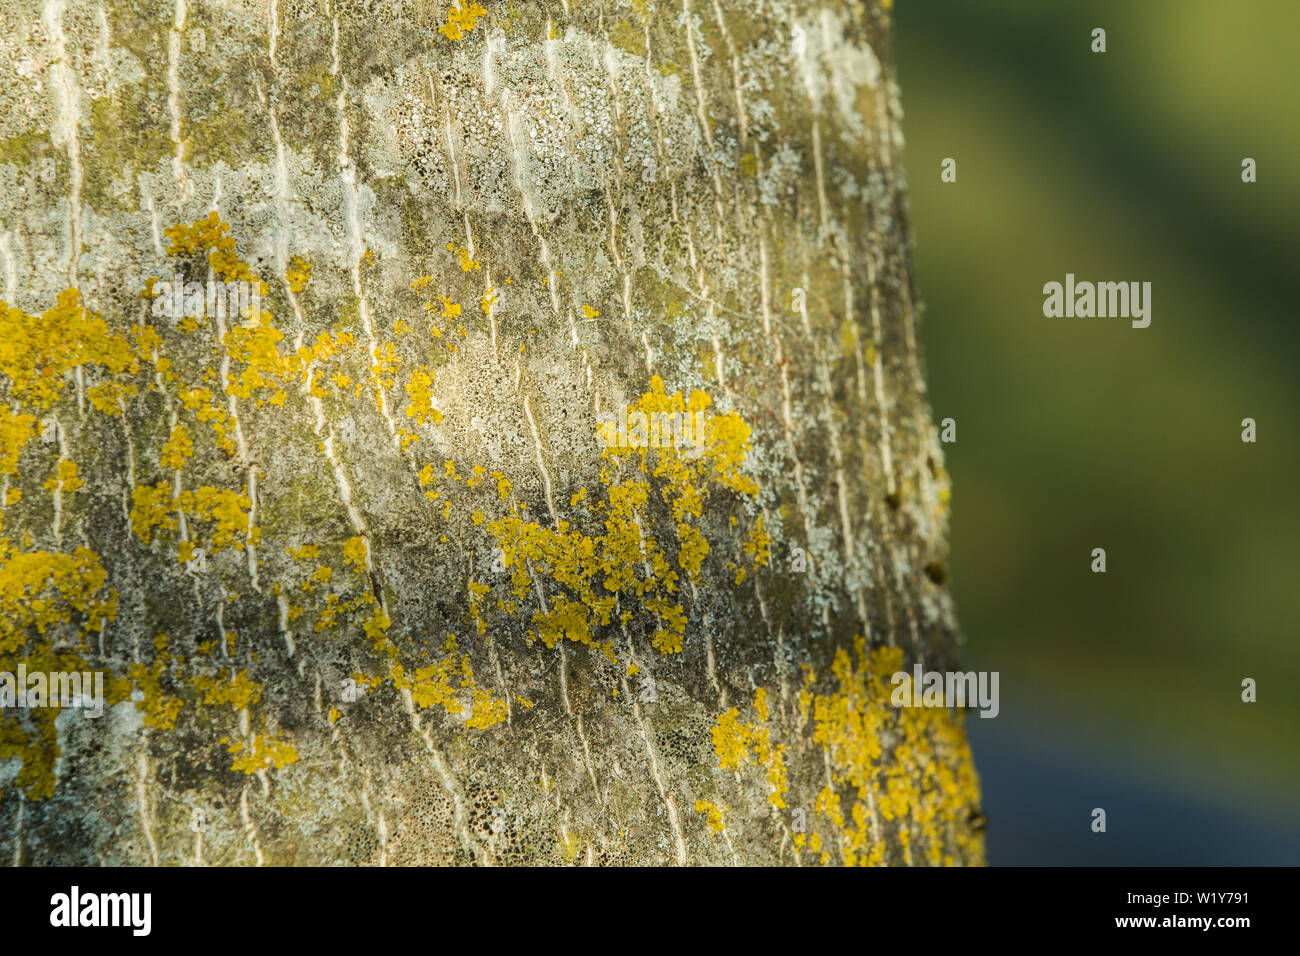 close up of a bark with yellow  and white moss and a blurred background - Stock Image